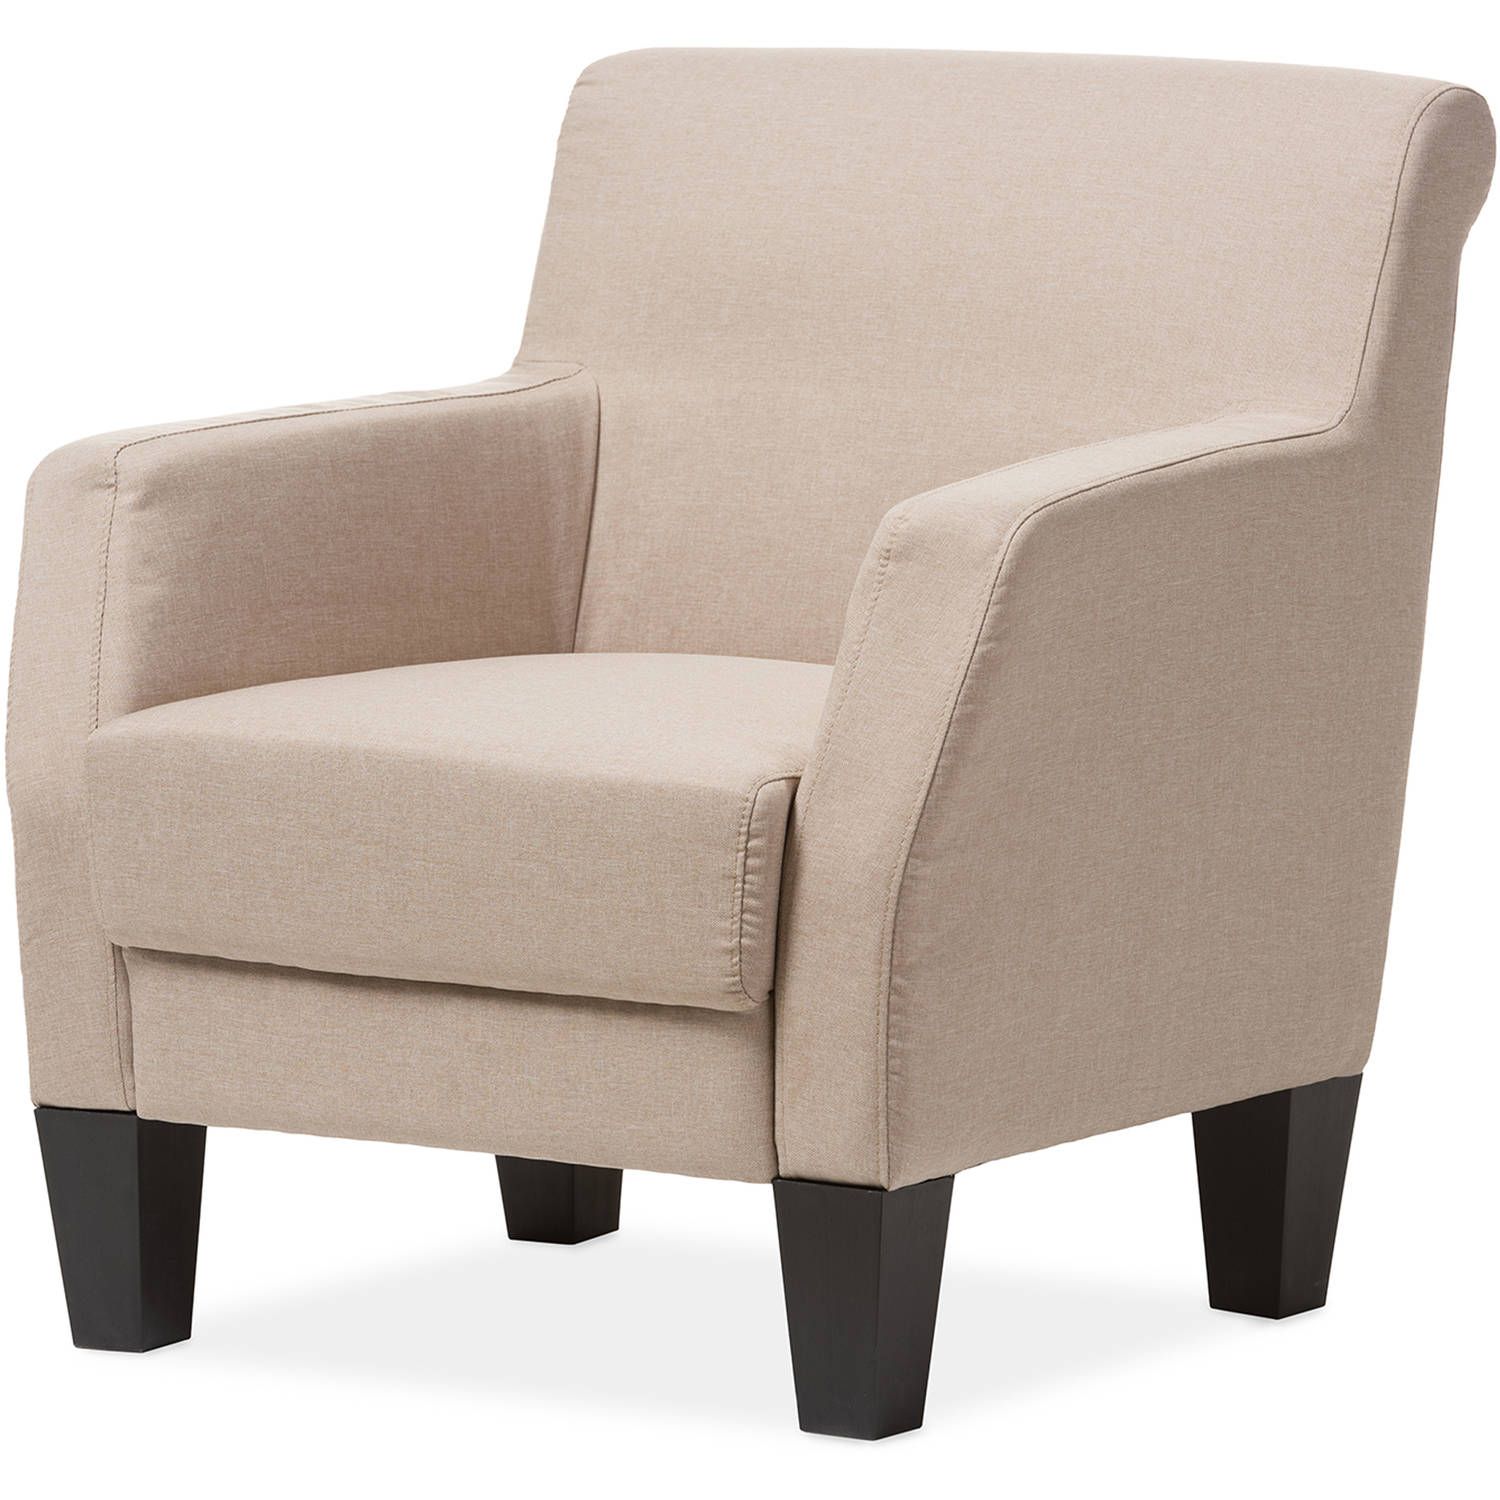 Baxton Studio Silhouettes Club Chair by Wholesale Interiors